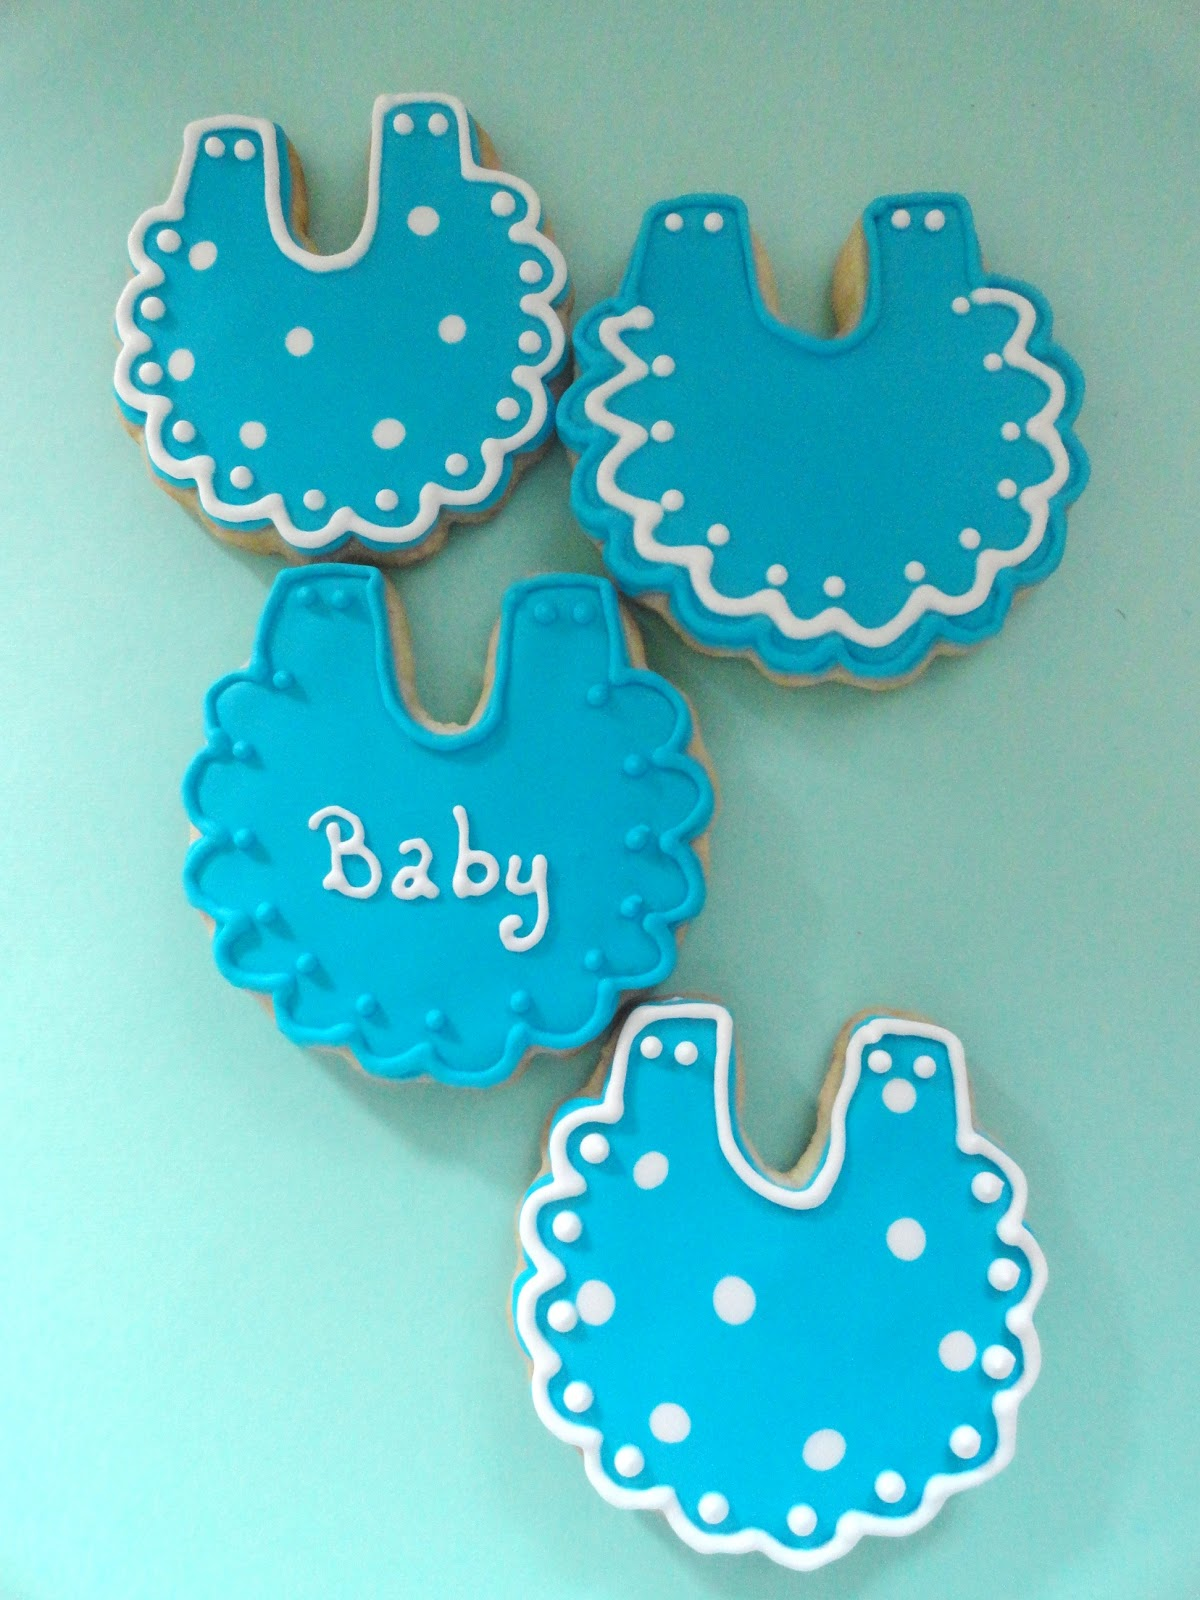 Baby Blue And Grey Bedroom: My Pink Little Cake: Blue And White Baby Boy Cookie Favors